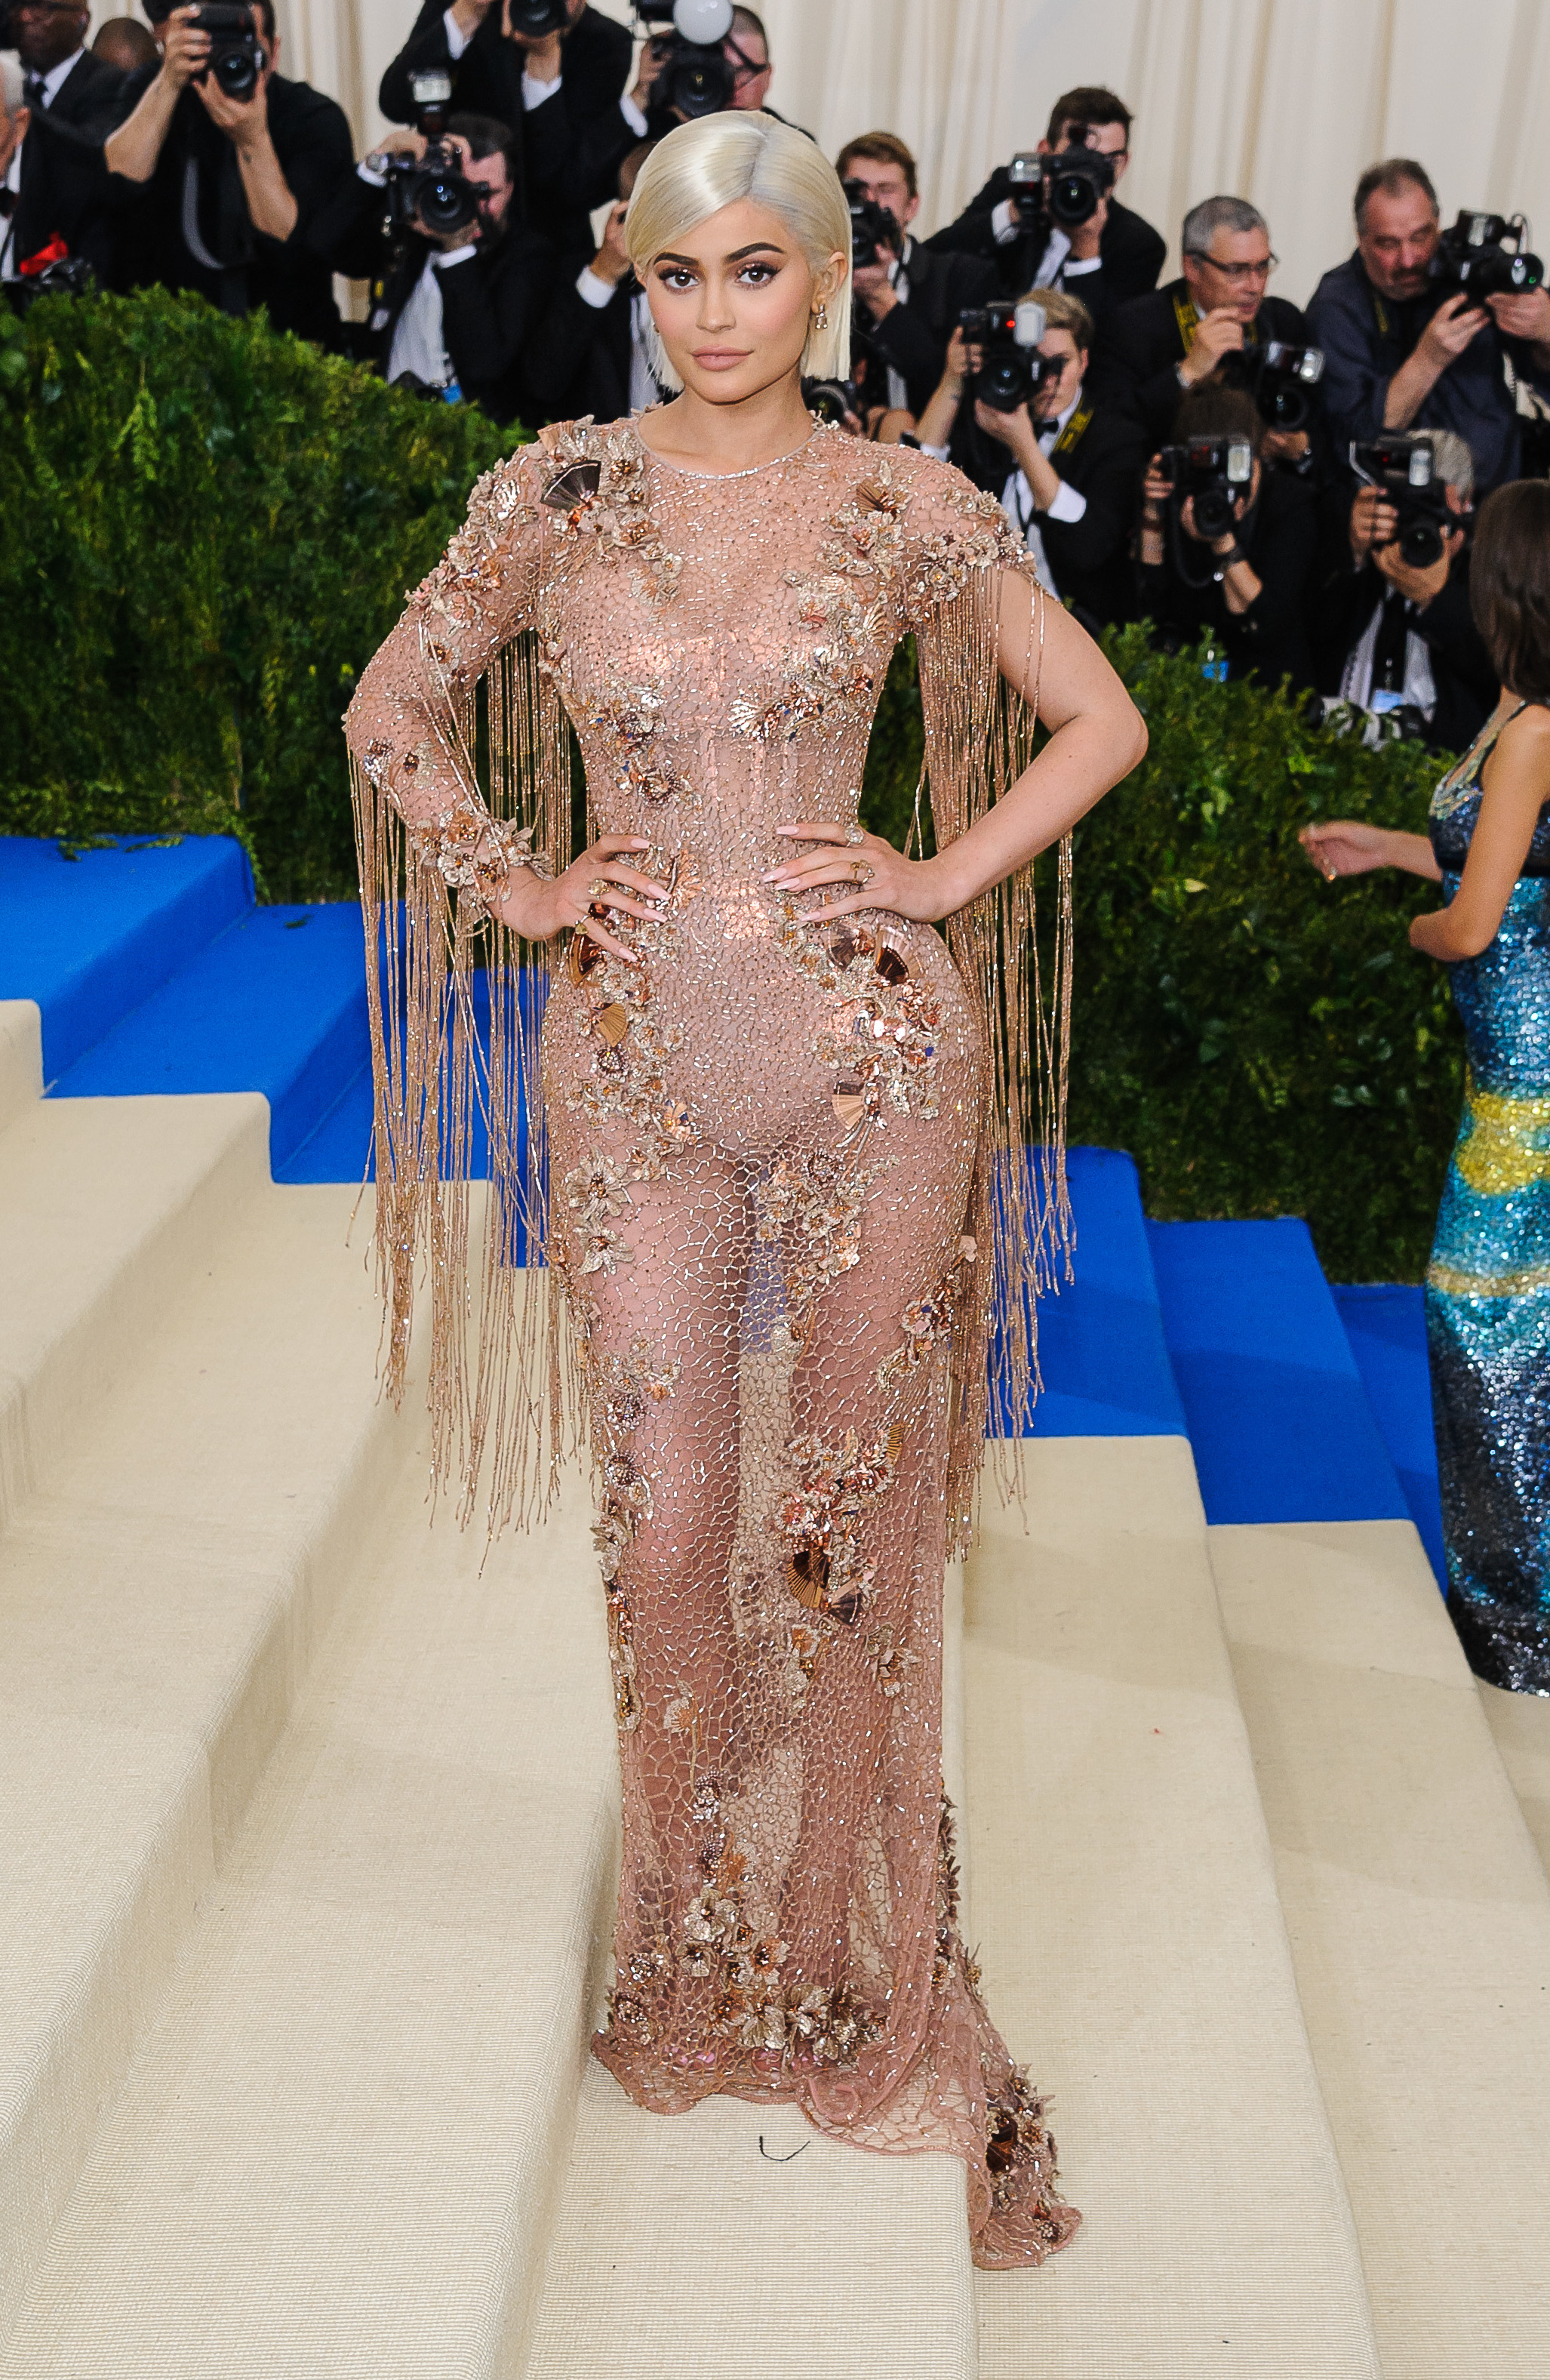 The Met Gala 2017 - Arrivals                                    Featuring: Kylie Jenner                  Where: New York, New York, United States                  When: 01 May 2017                  Credit: WENN.com